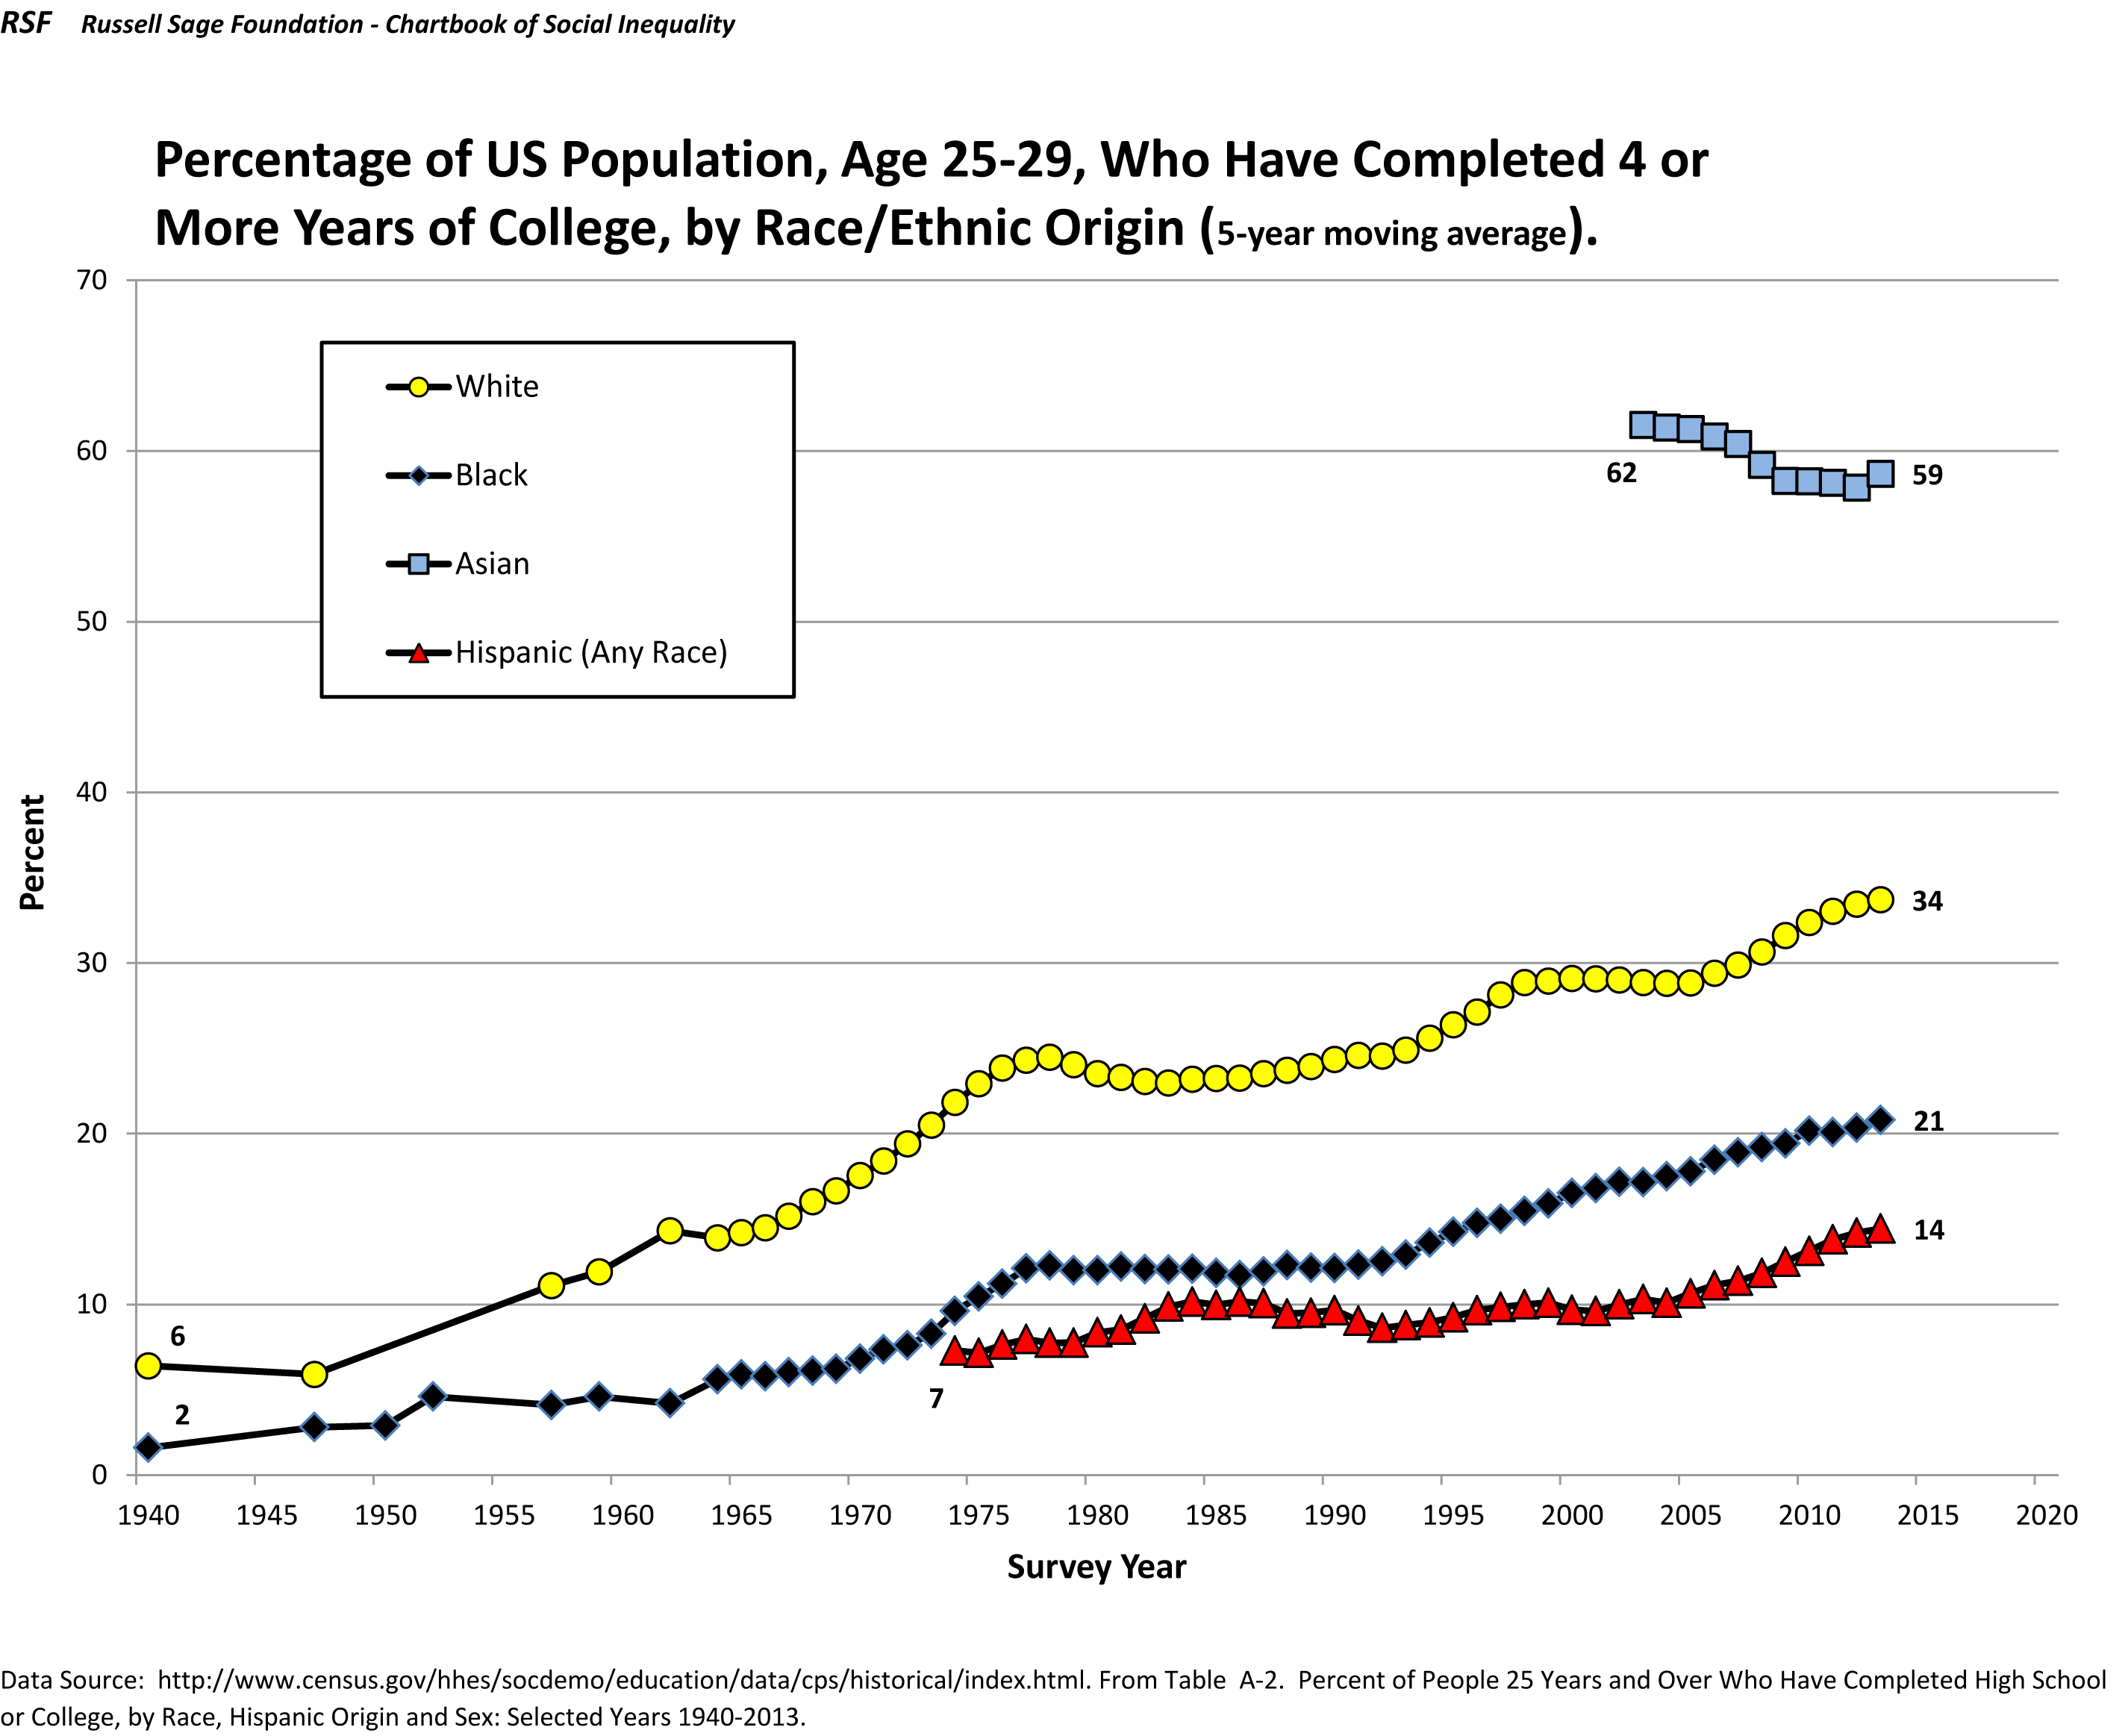 Completed Of 4 College Us Have Years Percentage Population To 25 29 Race Or ethnic Origin More By Who Rsf Age